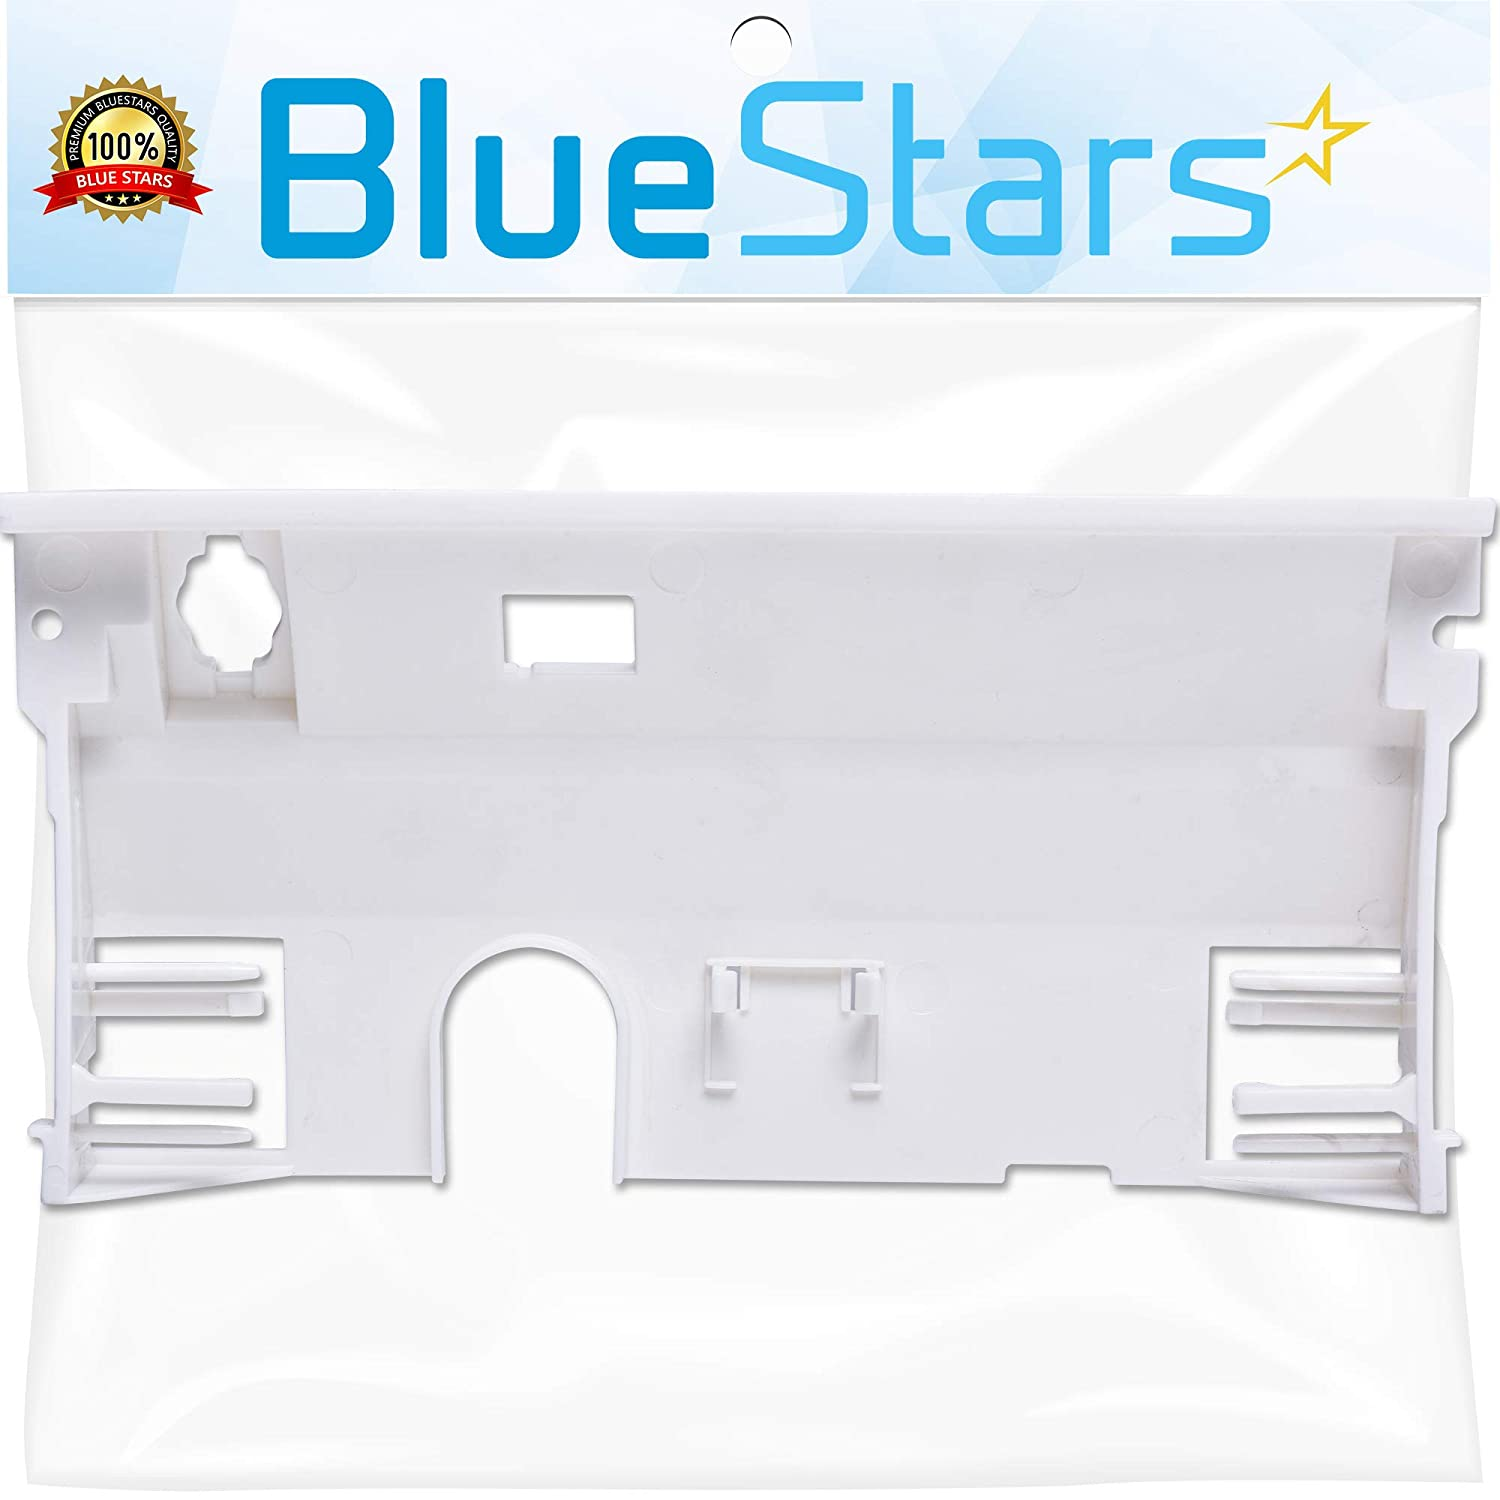 Ultra Durable WP2180226 Refrigerator Control Bracket Replacement part by Blue Stars - Exact Fit for Whirlpool & Kenmore Refrigerators - Replaces 2180226, 2180228, 2180338, 2183771